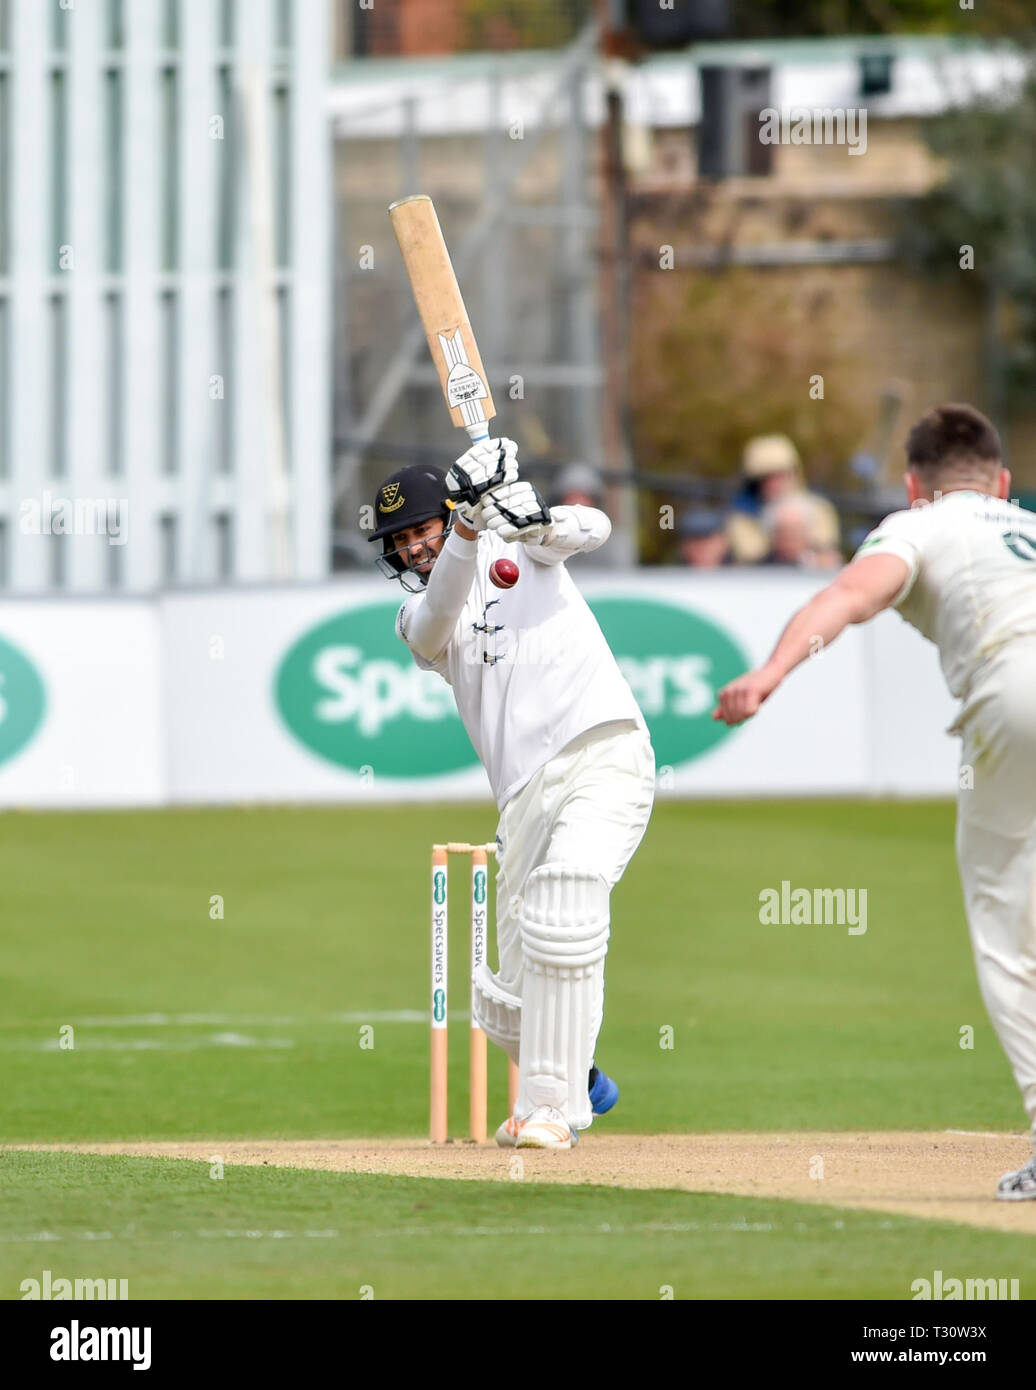 Hove Sussex, UK. 05th Apr, 2019. David Wiese batting for Sussex against Leicestershire in the Specasavers County Championship Division Two match at the 1st Central County Ground in Hove on a sunny but cool first morning of the season Credit: Simon Dack/Alamy Live News - Stock Image